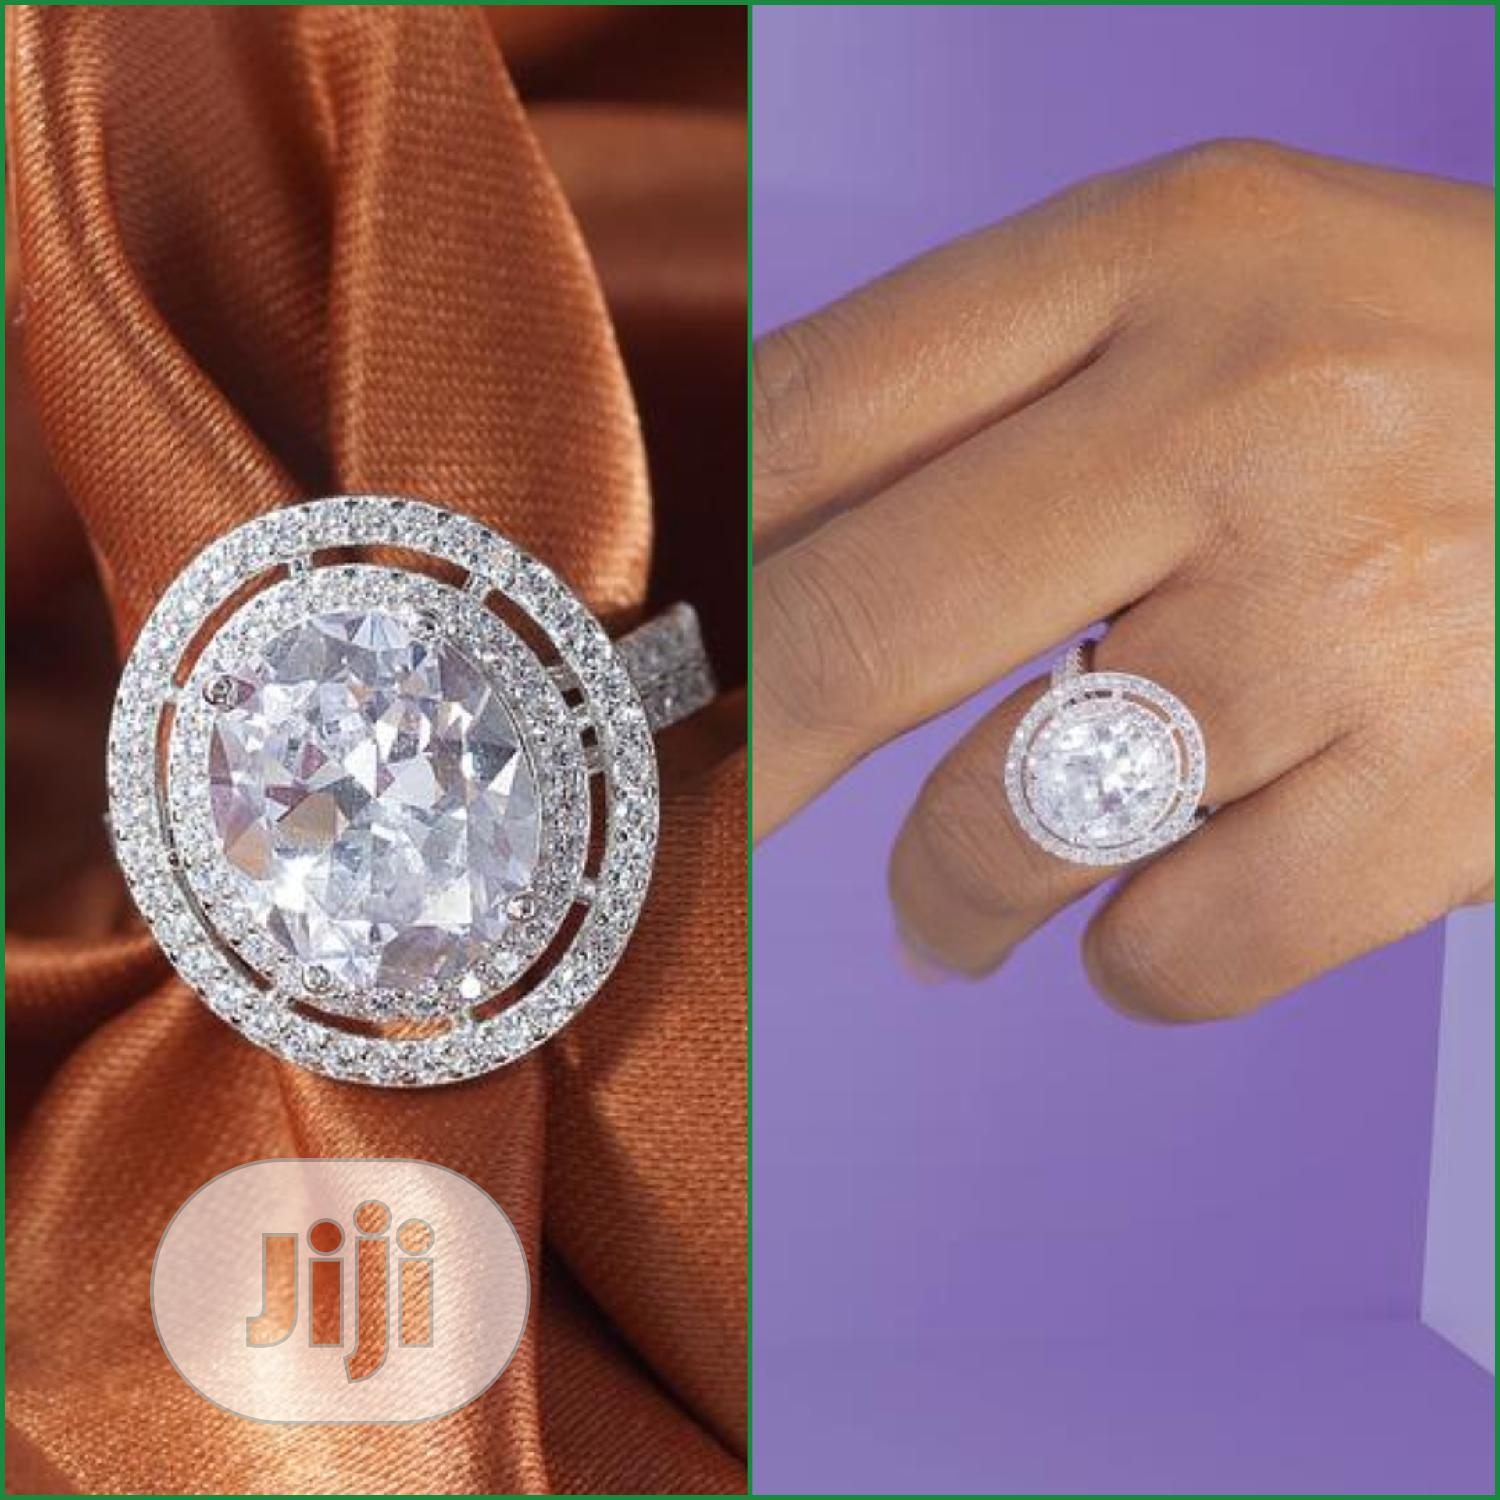 Engagement Rings.   Wedding Wear & Accessories for sale in Benin City, Edo State, Nigeria